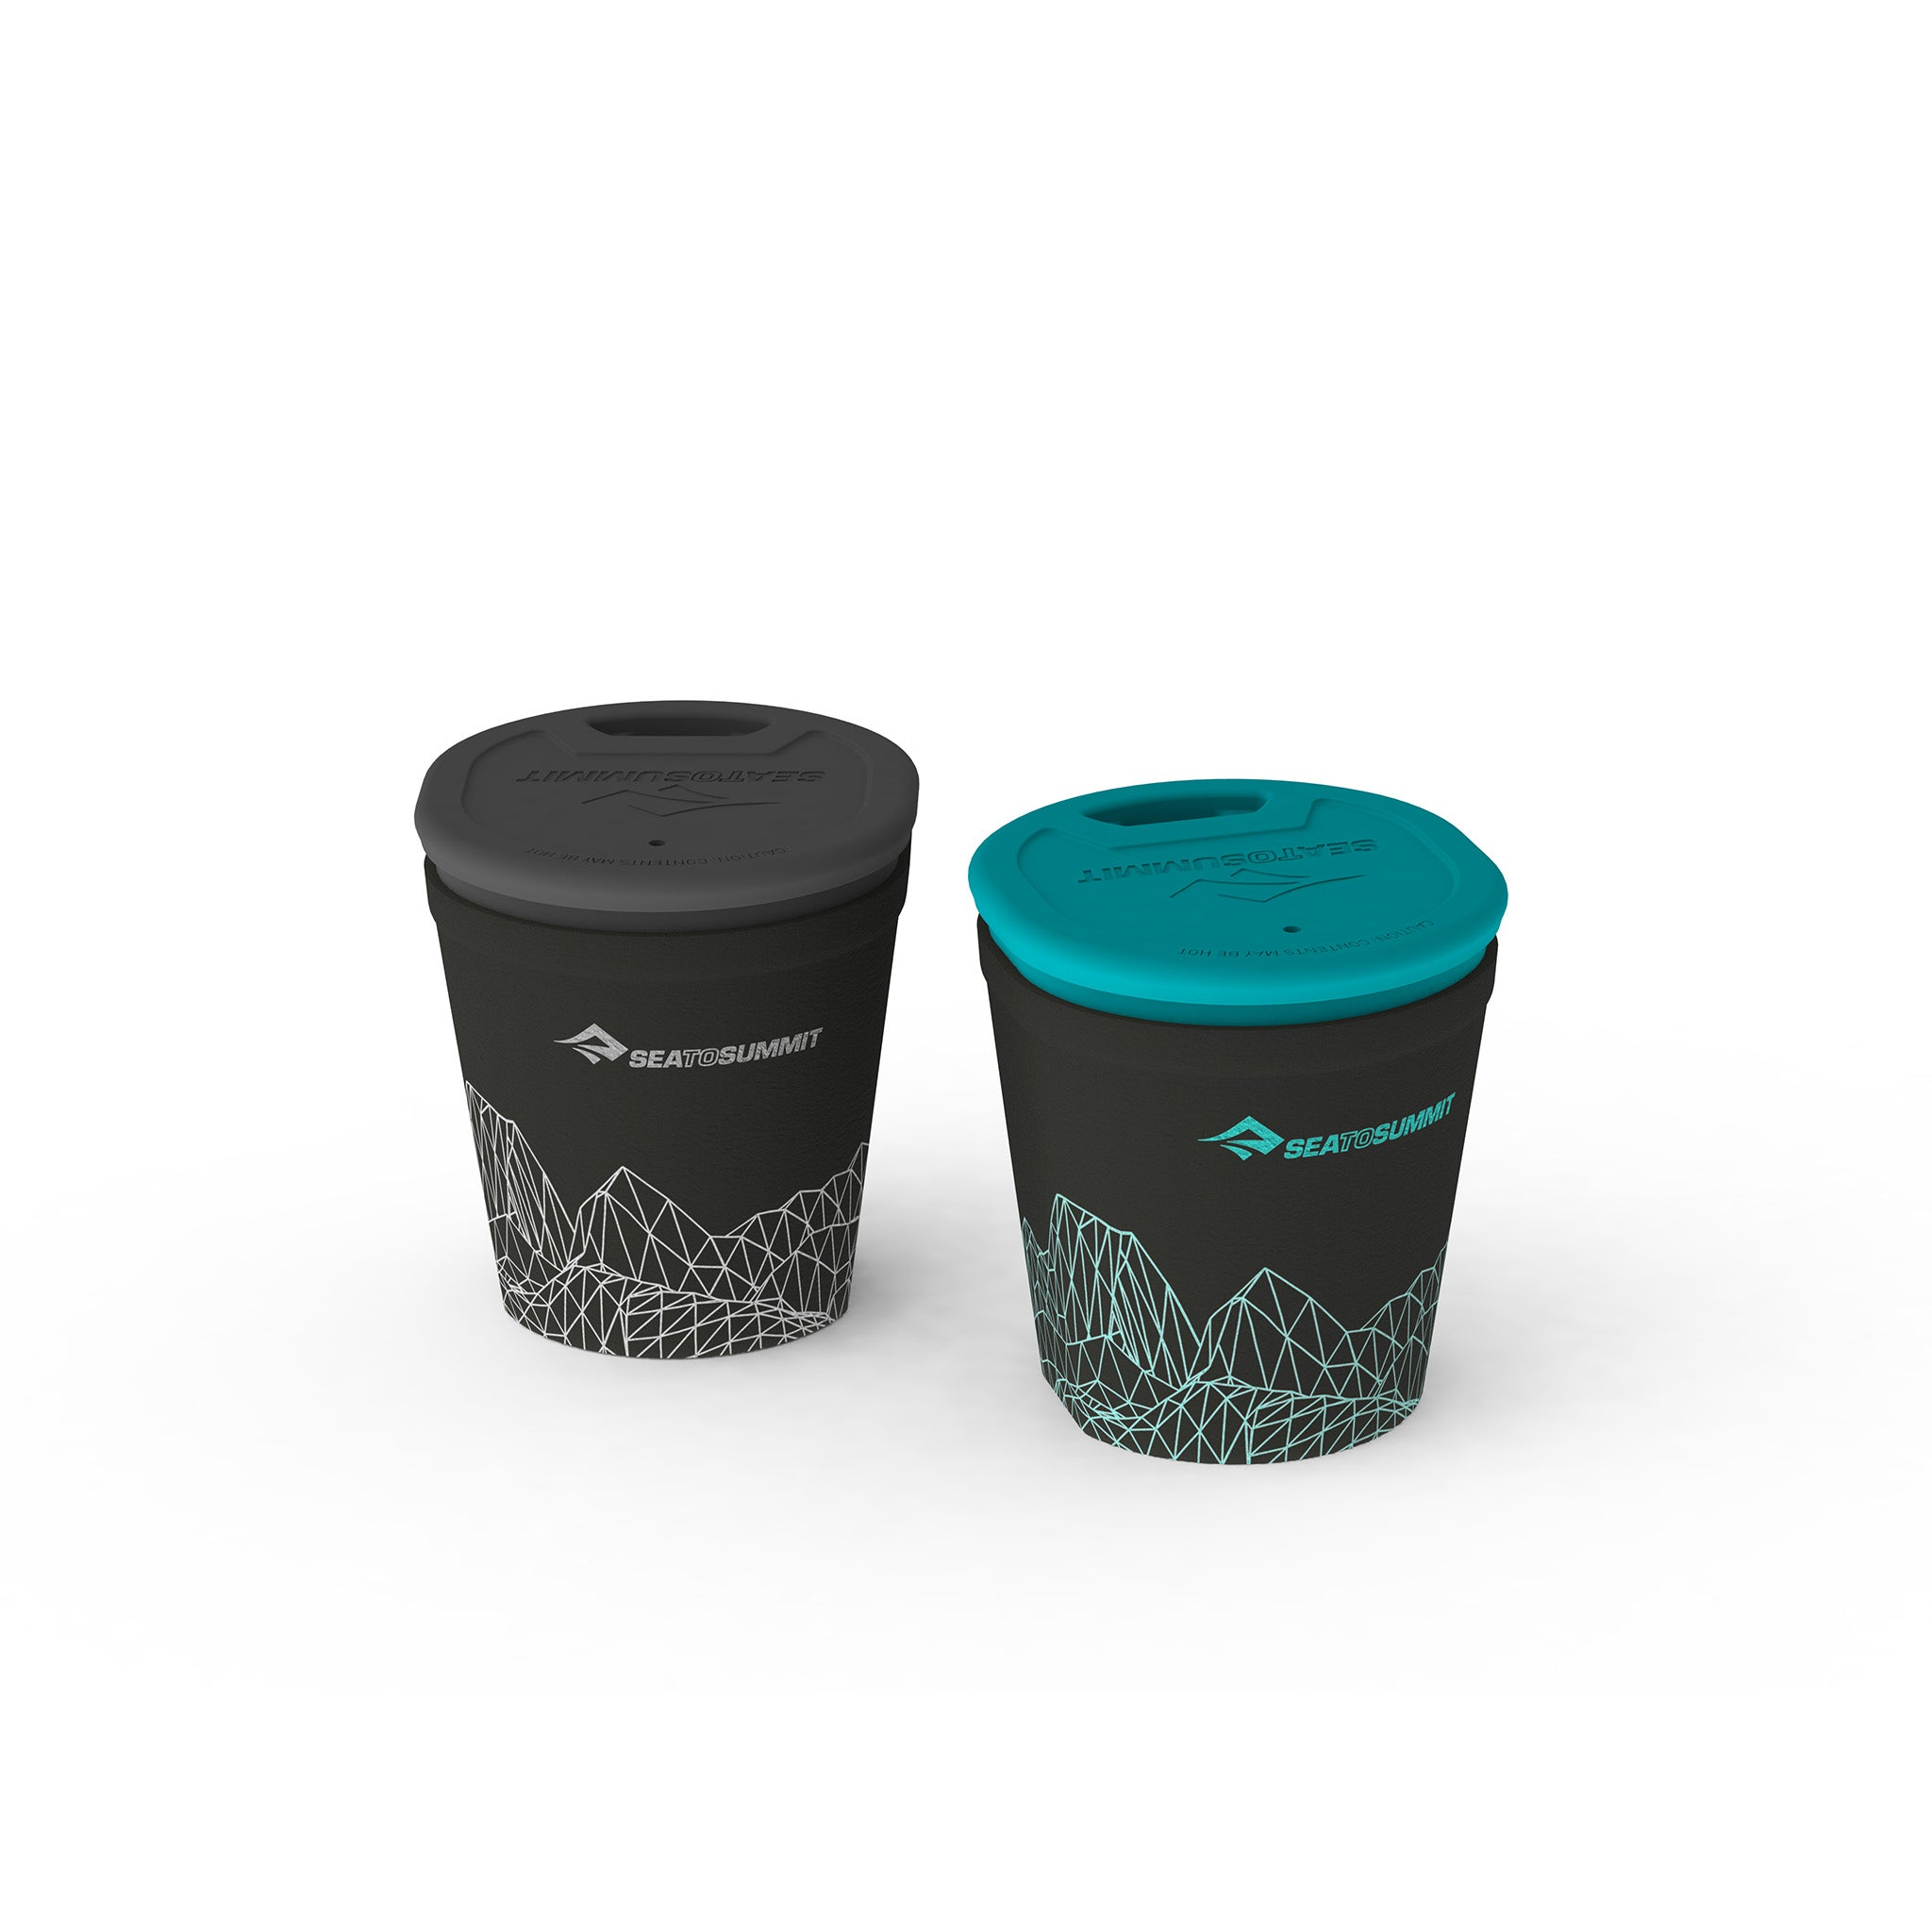 Delta Light Insulated Mug _ Group _ backcountry mug